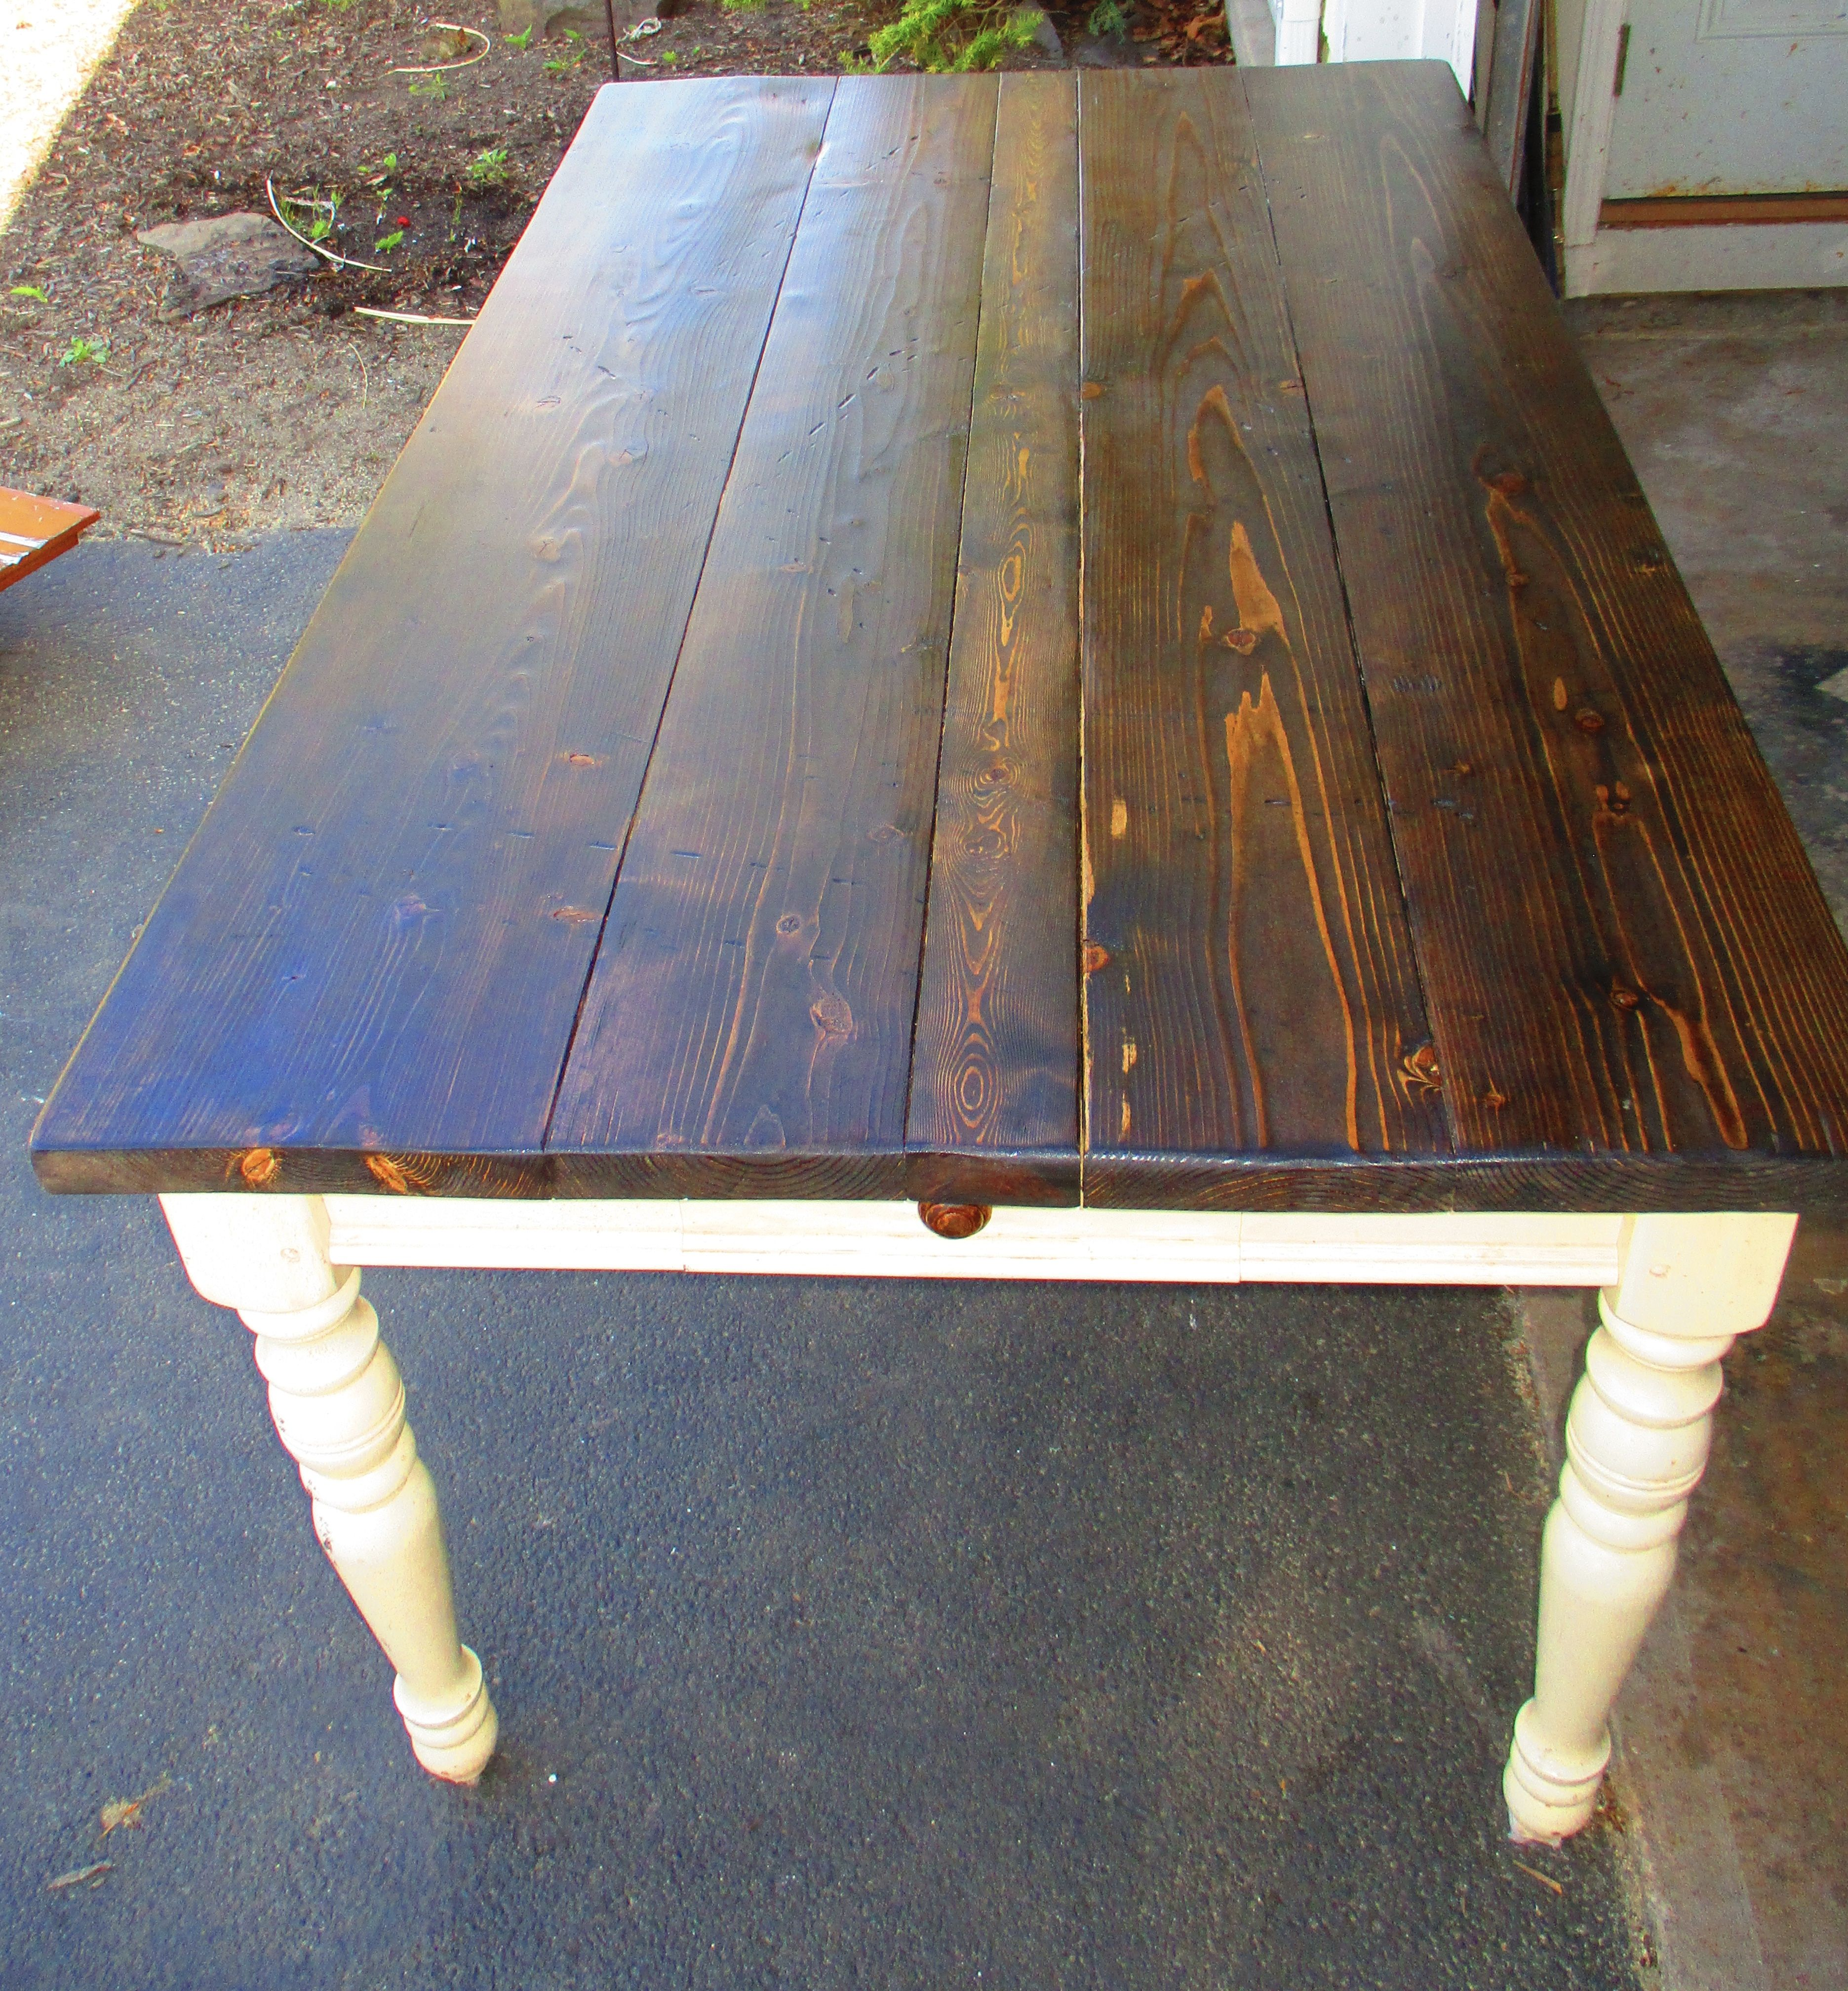 New table top for old table. Used pine / barn wood stained ...